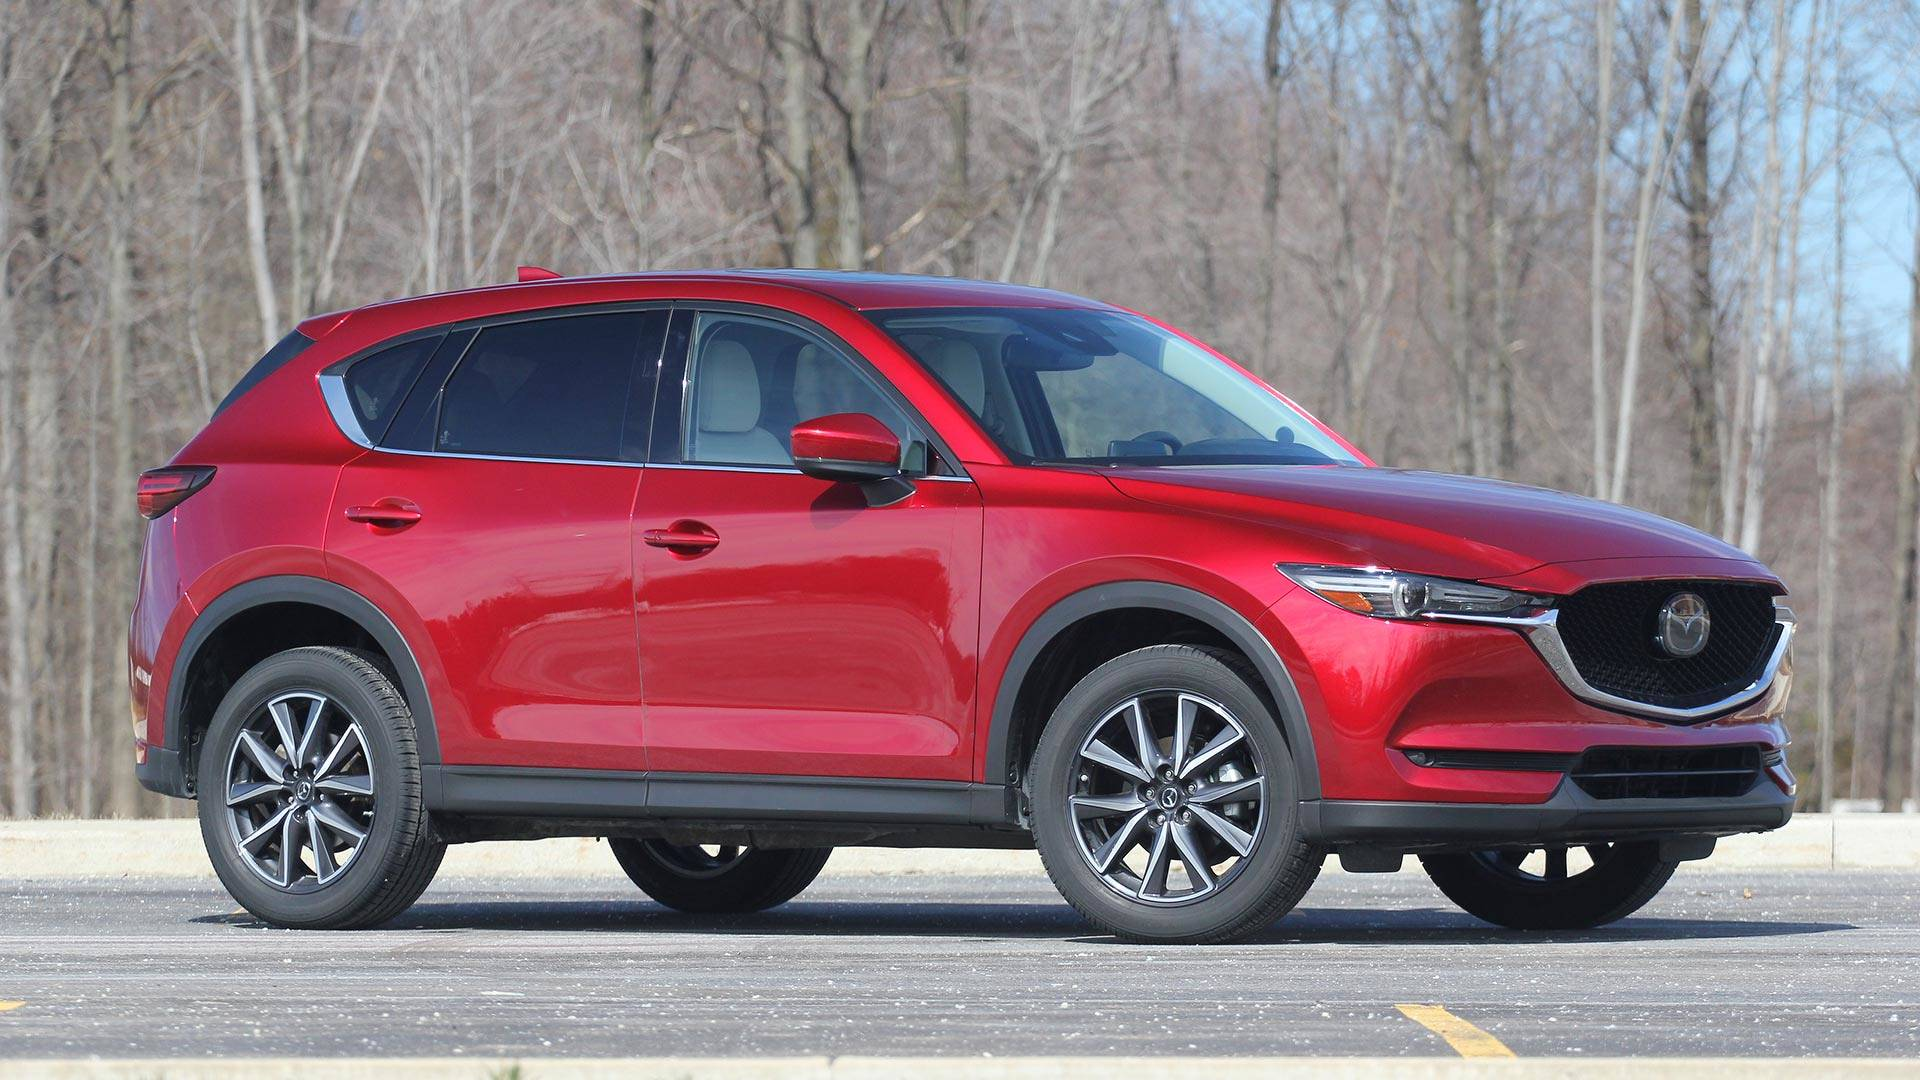 seat vehicles ts gallery cx canada en soul paint red metallic overview mazda small crystal suv